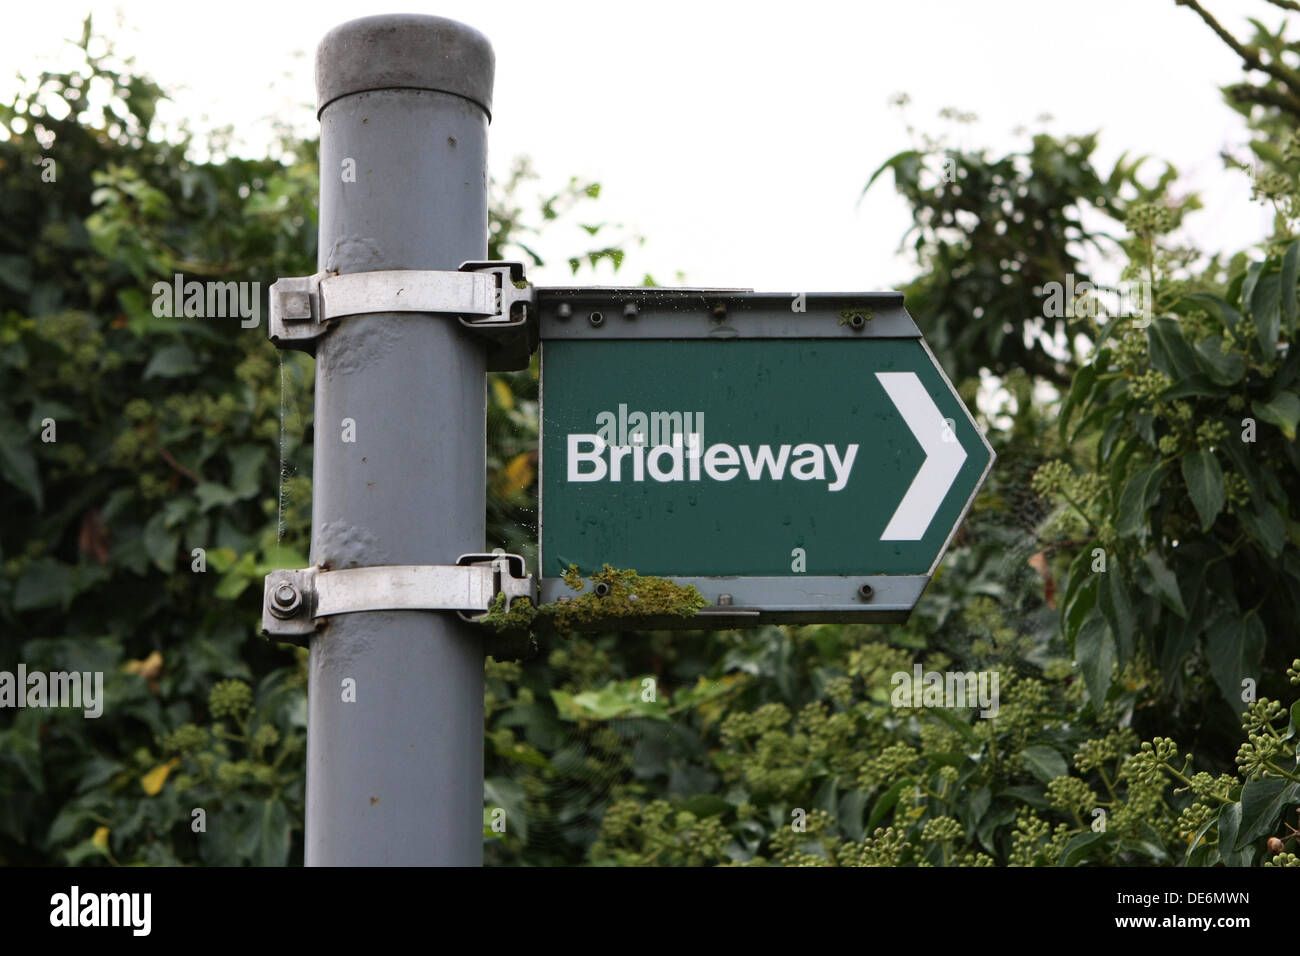 Standard British bridleway right of way sign - Stock Image